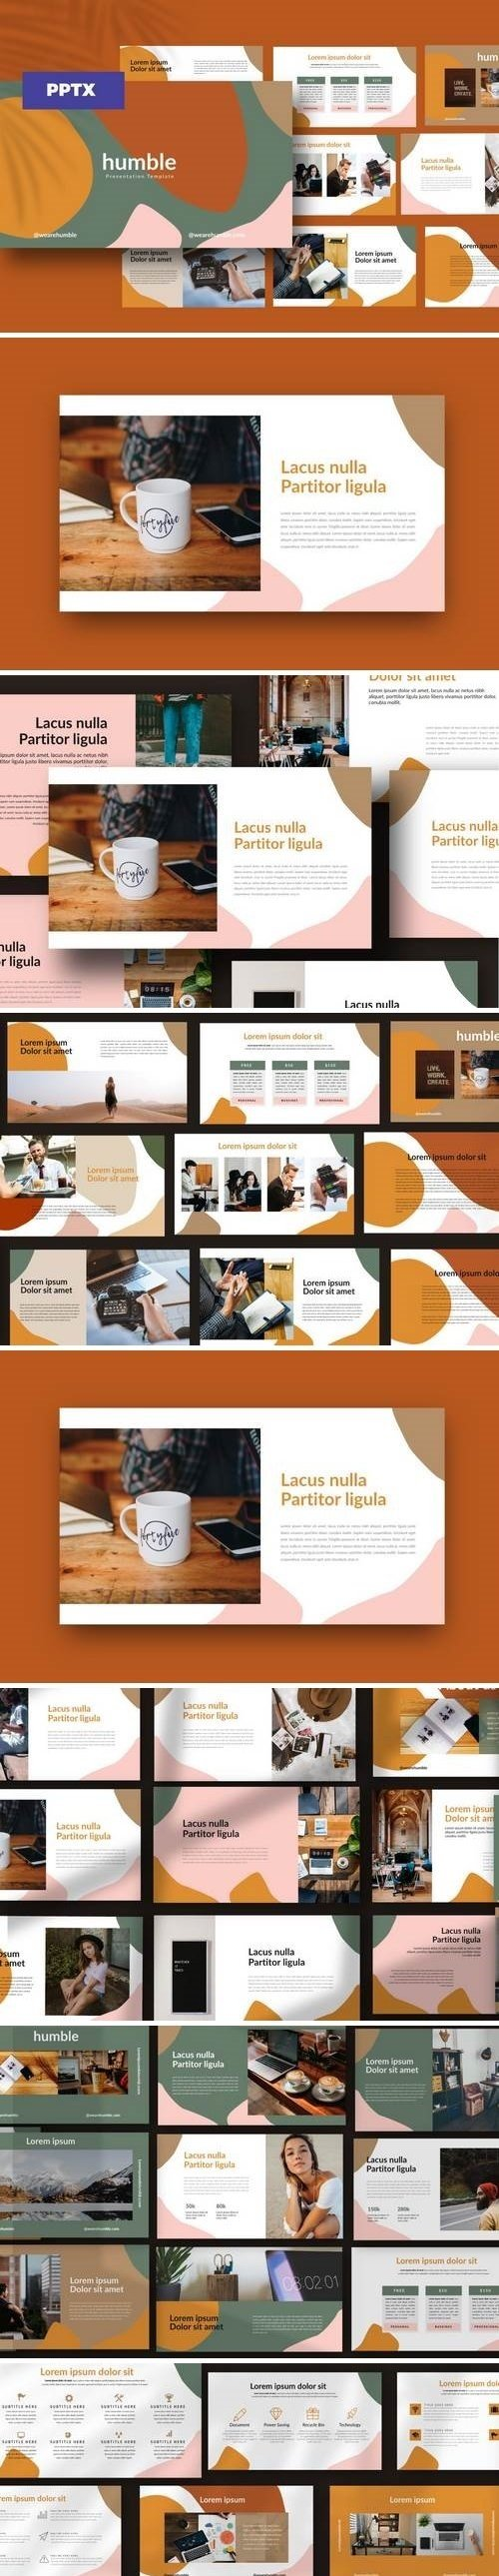 Humble - Powerpoint, Keynote, Google Sliders Templates